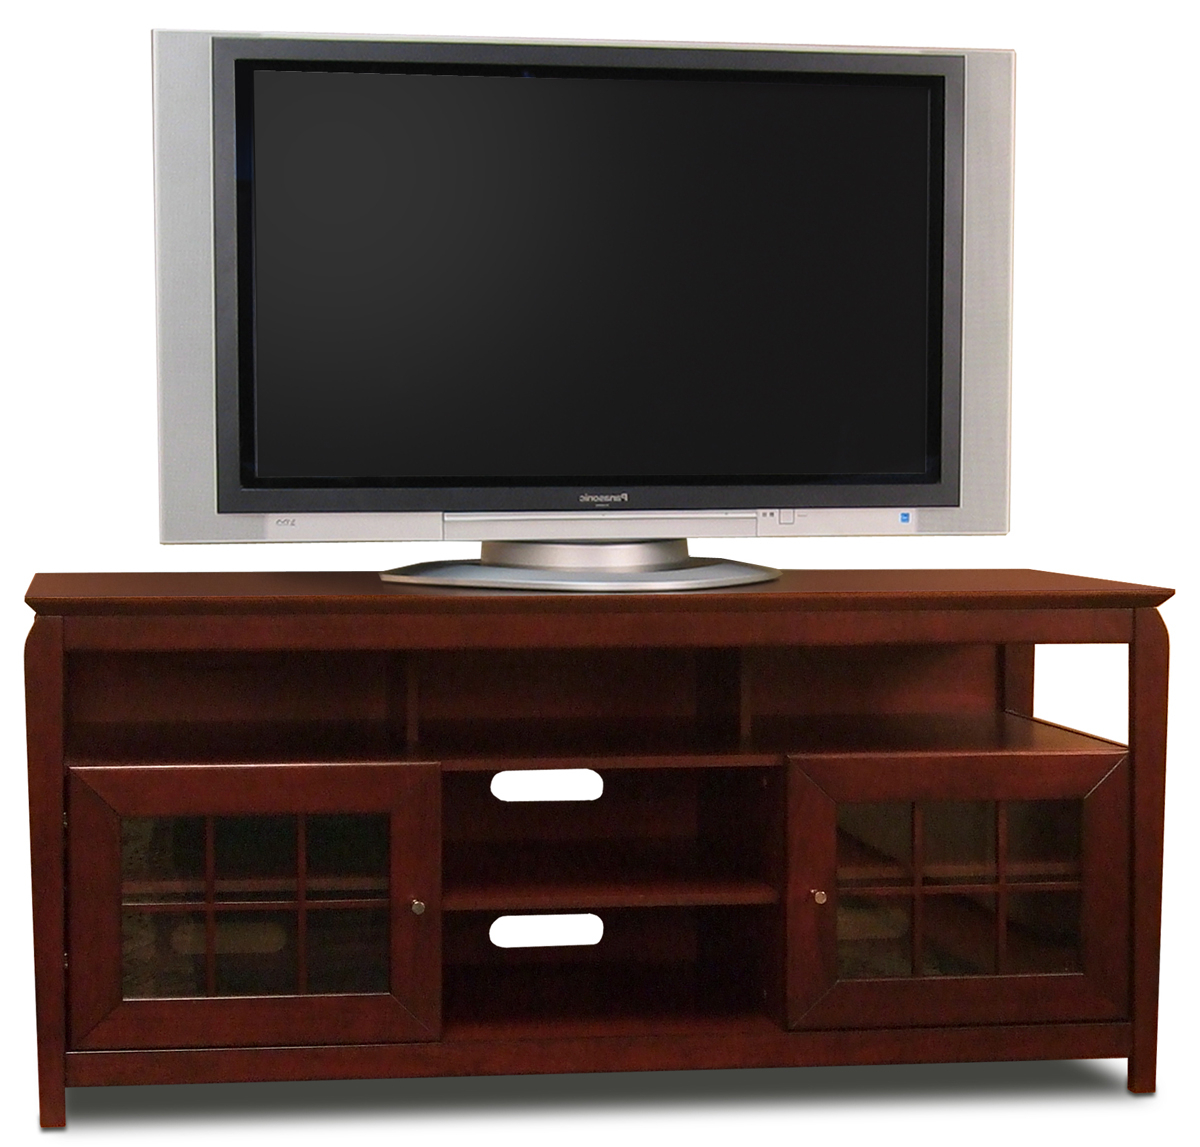 """Most Current Leafwood Tv Stands For Tvs Up To 60"""" Regarding Techcraft Bay6028b Tv Stand Up To 60"""" Tvs (View 5 of 20)"""